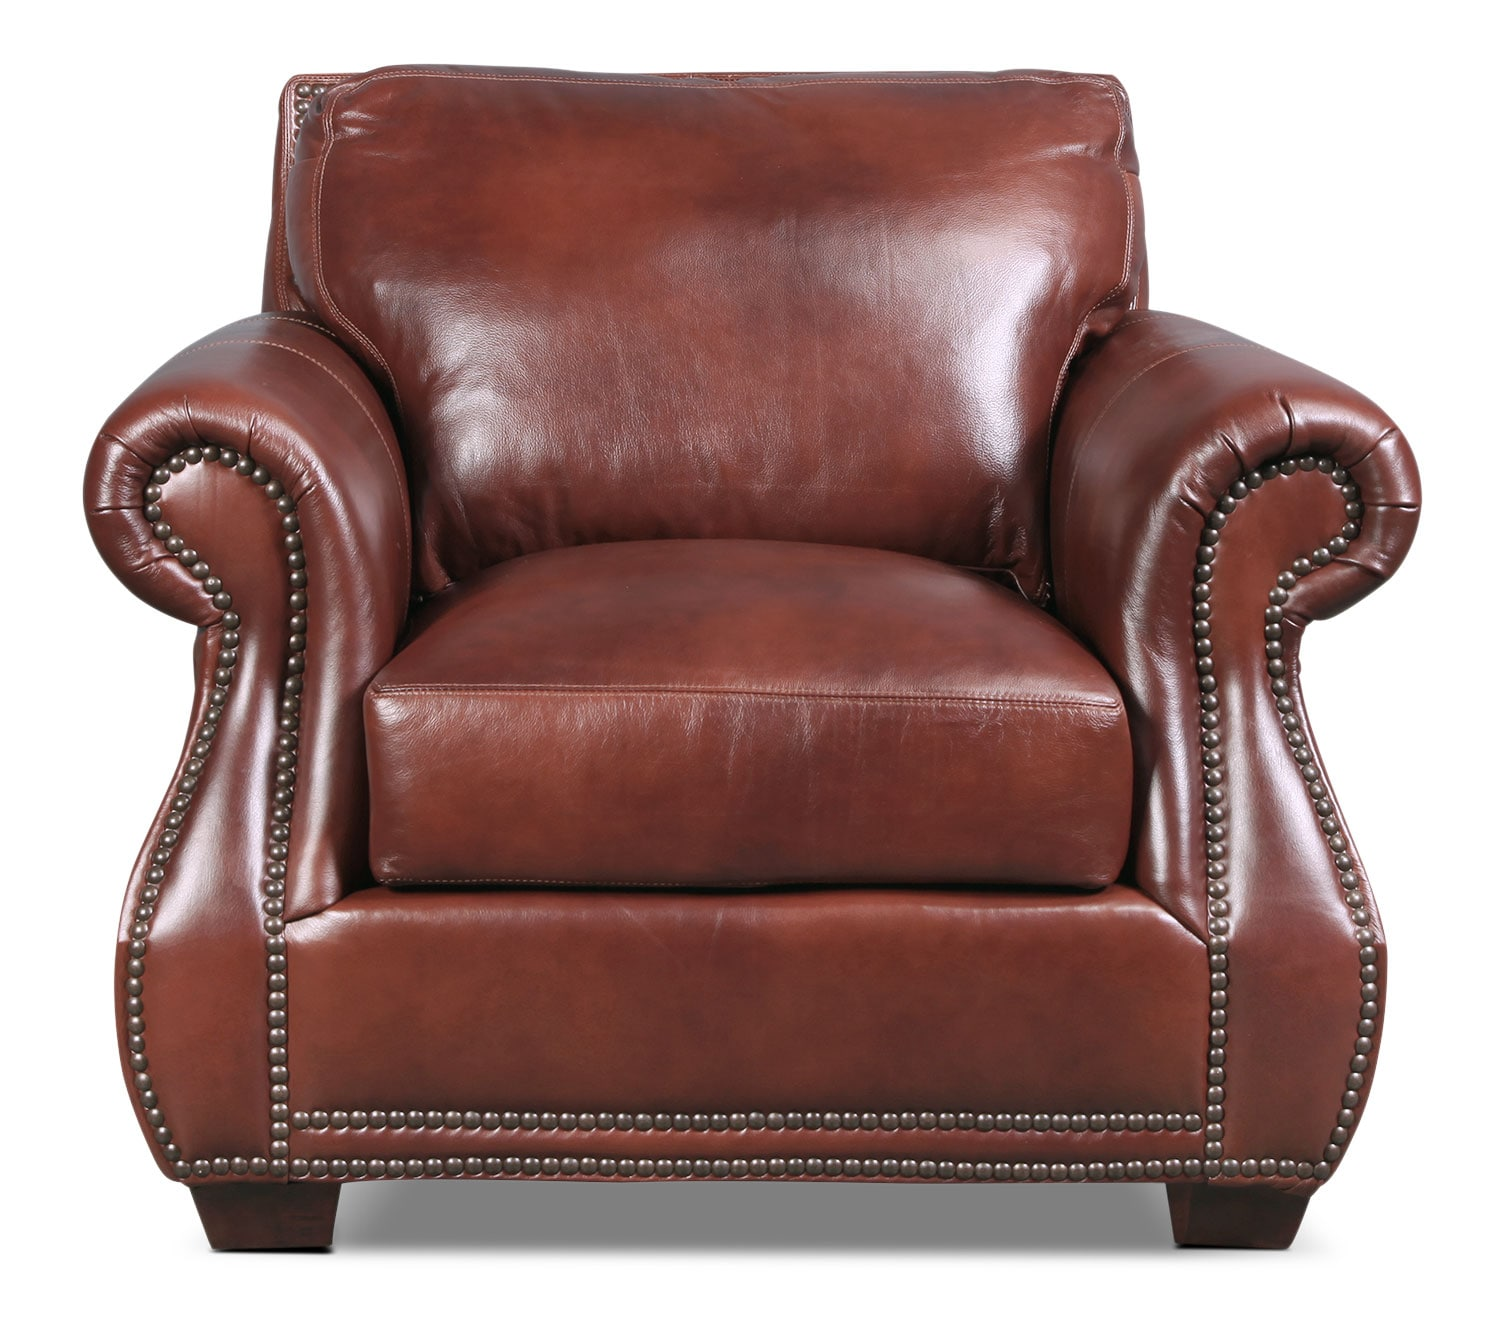 Park Avenue Chair - Scotch